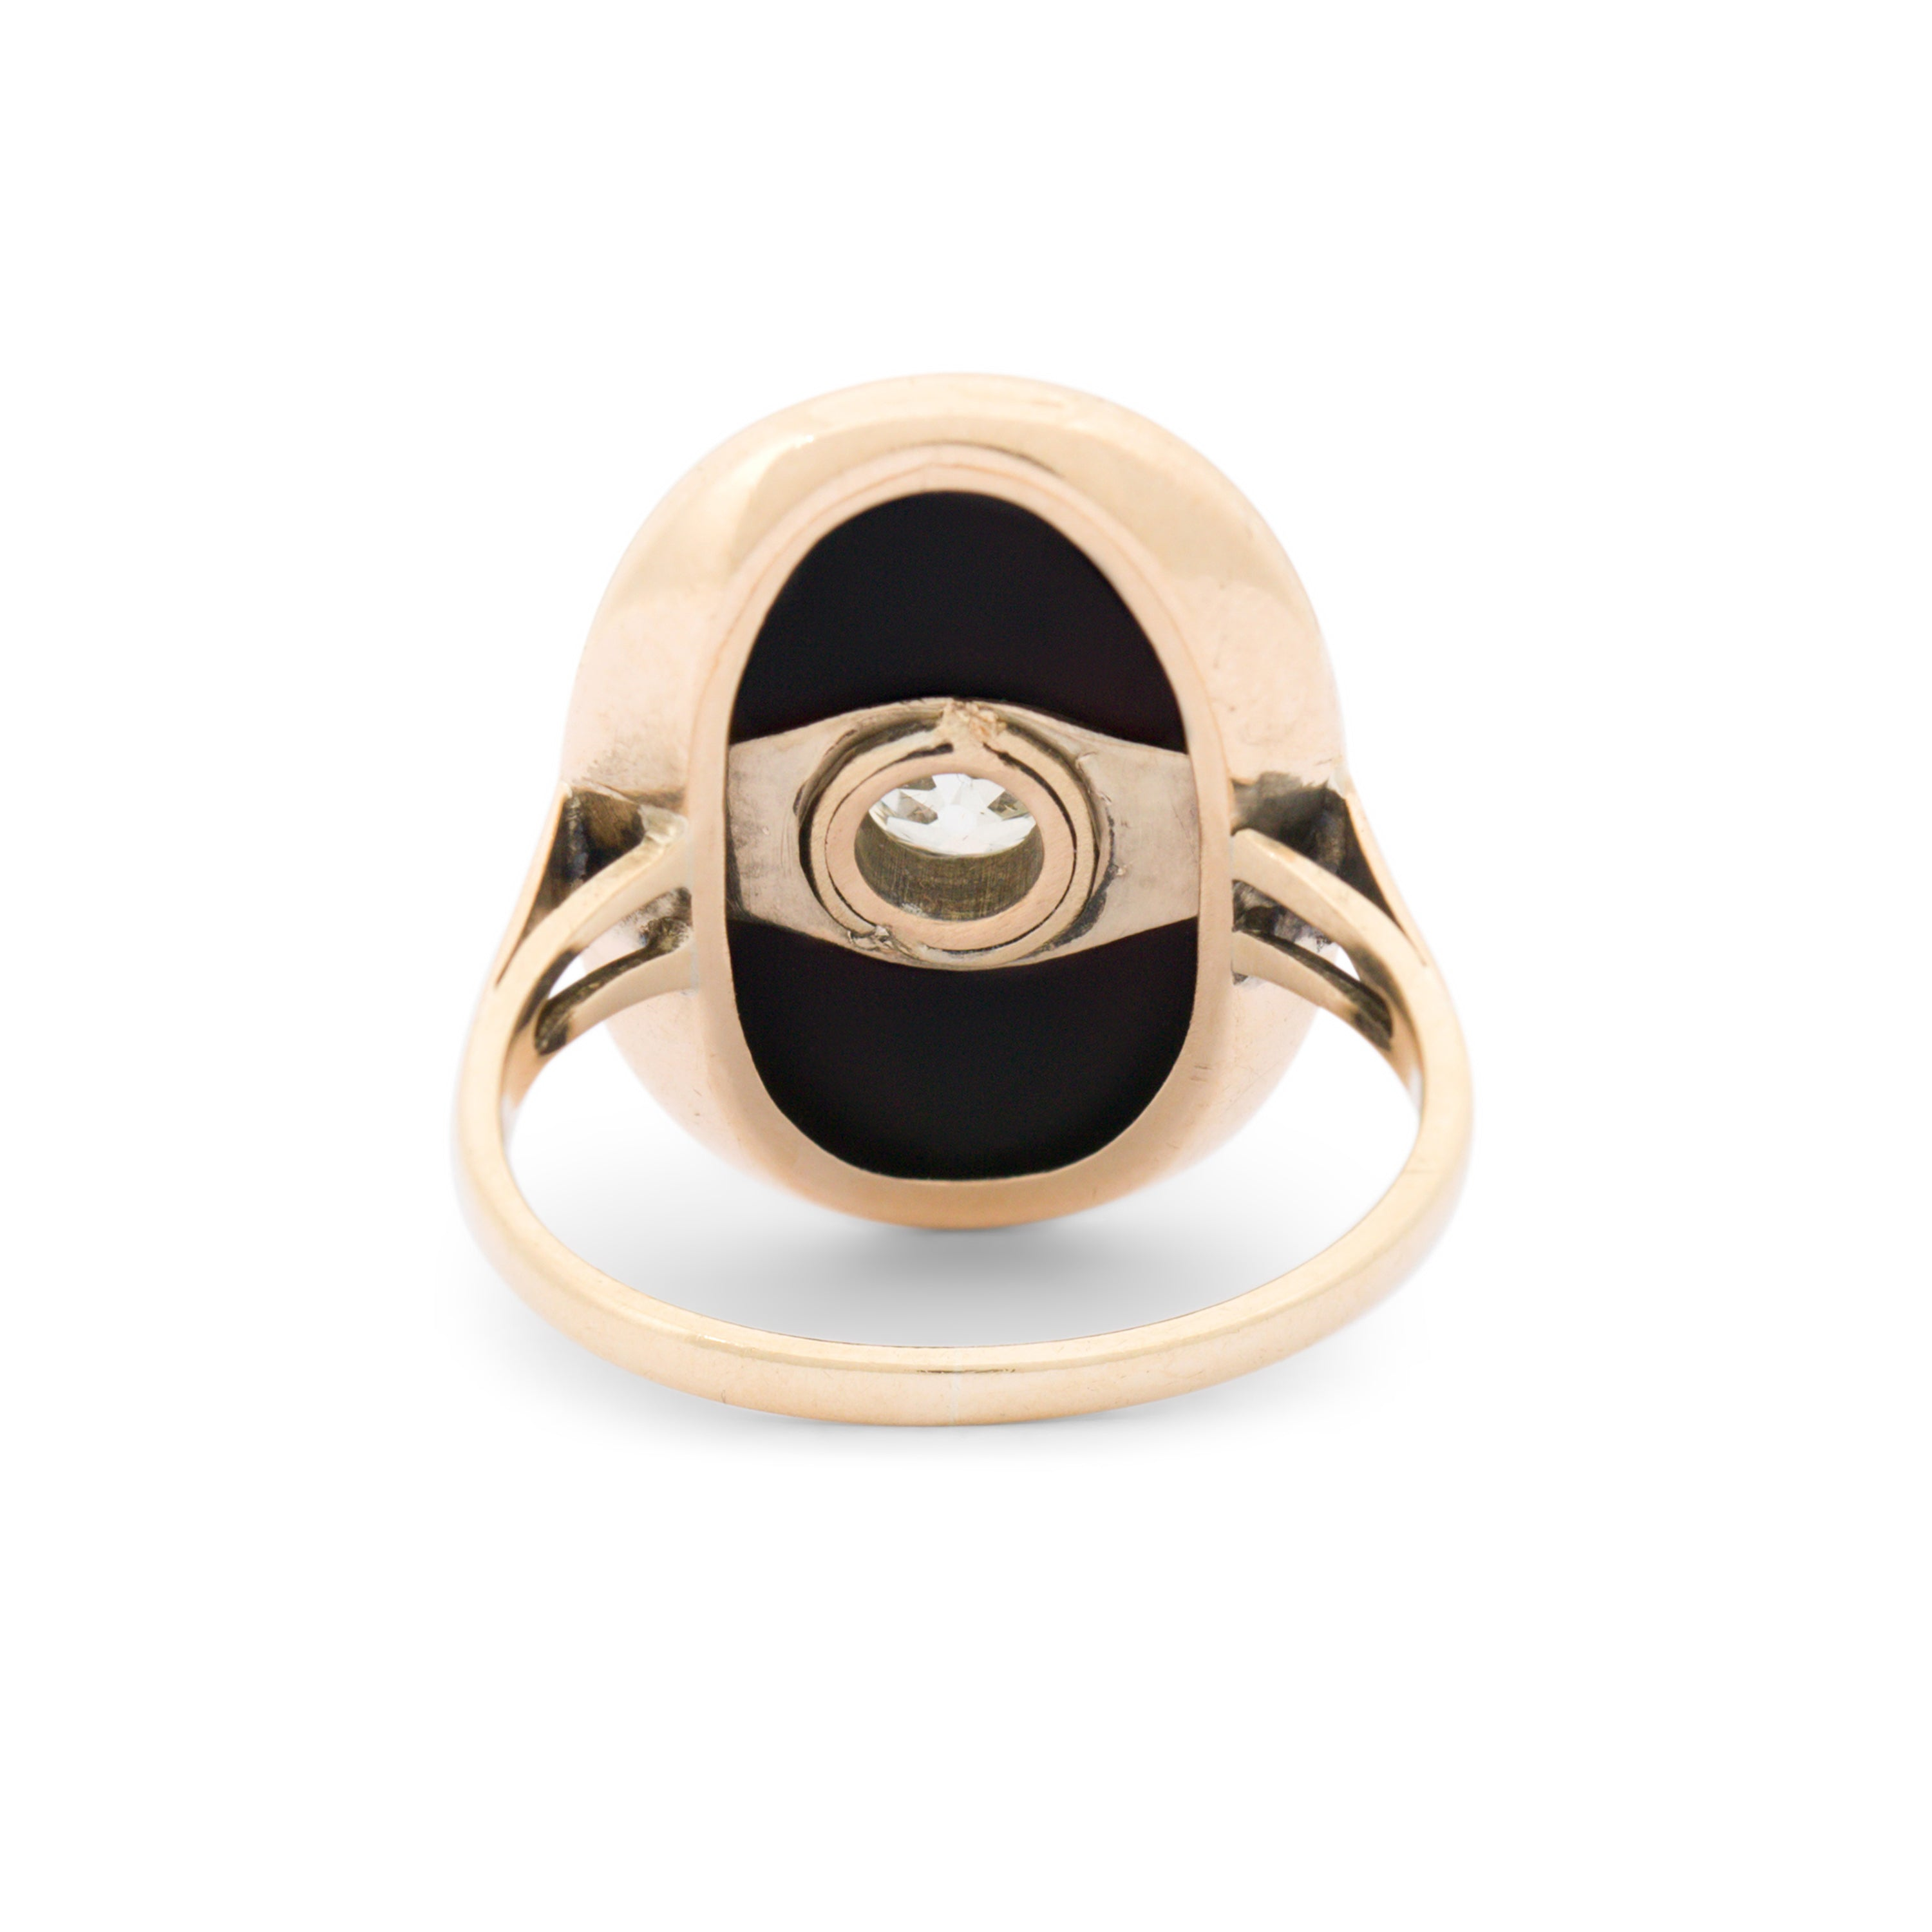 Victorian Onyx, Old Mine Cut Diamond And 14k Gold Ring